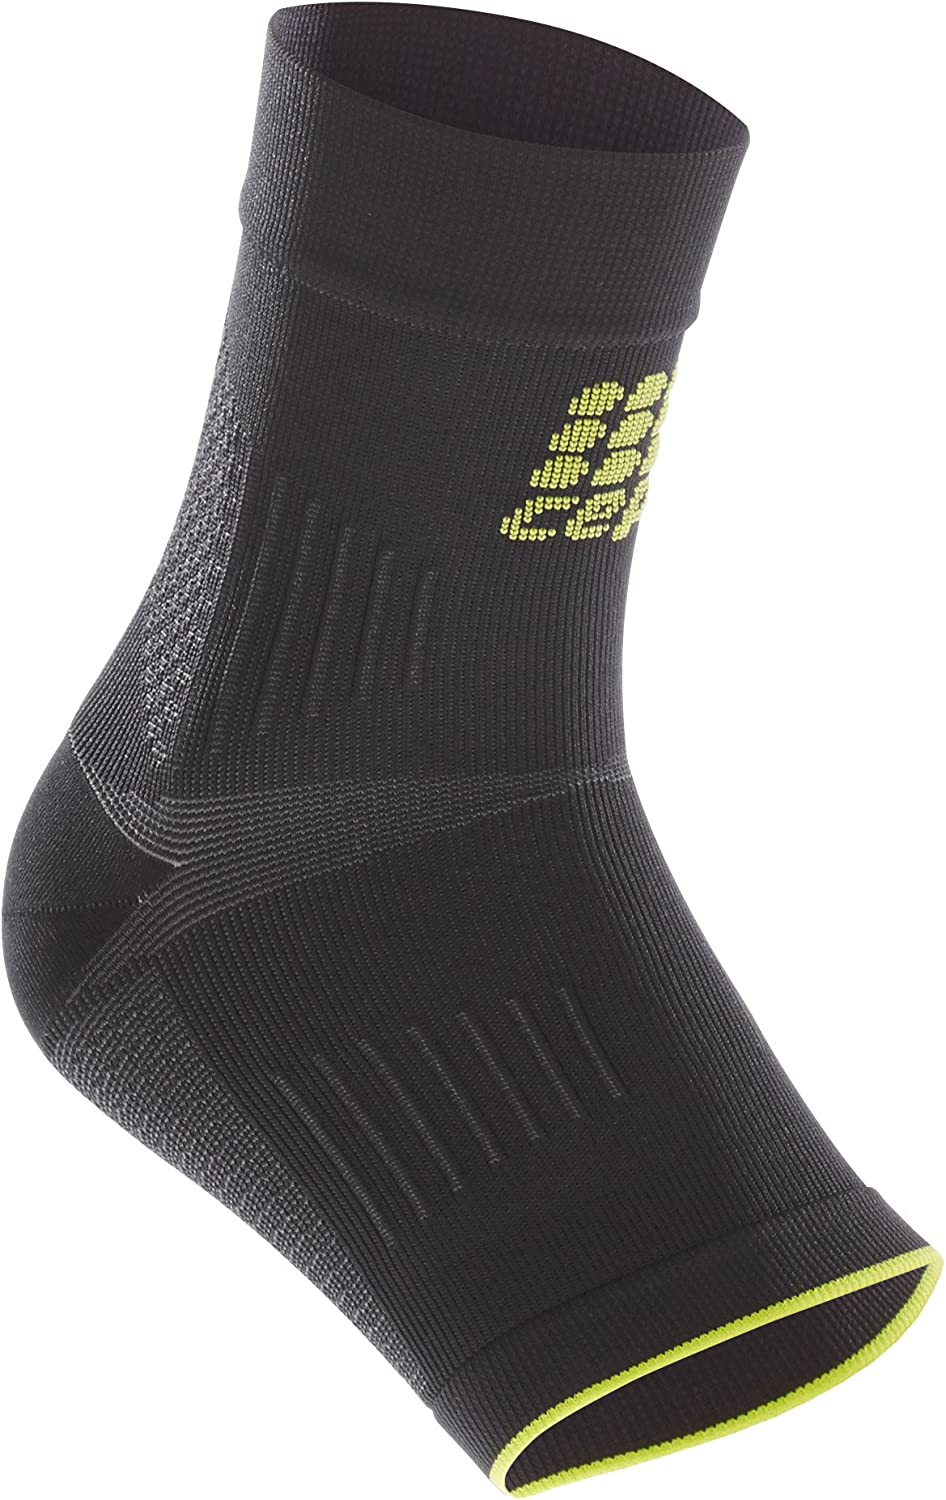 CEP Ortho+ Plantar Fasciitis Heel Compression Single Sleeve 2